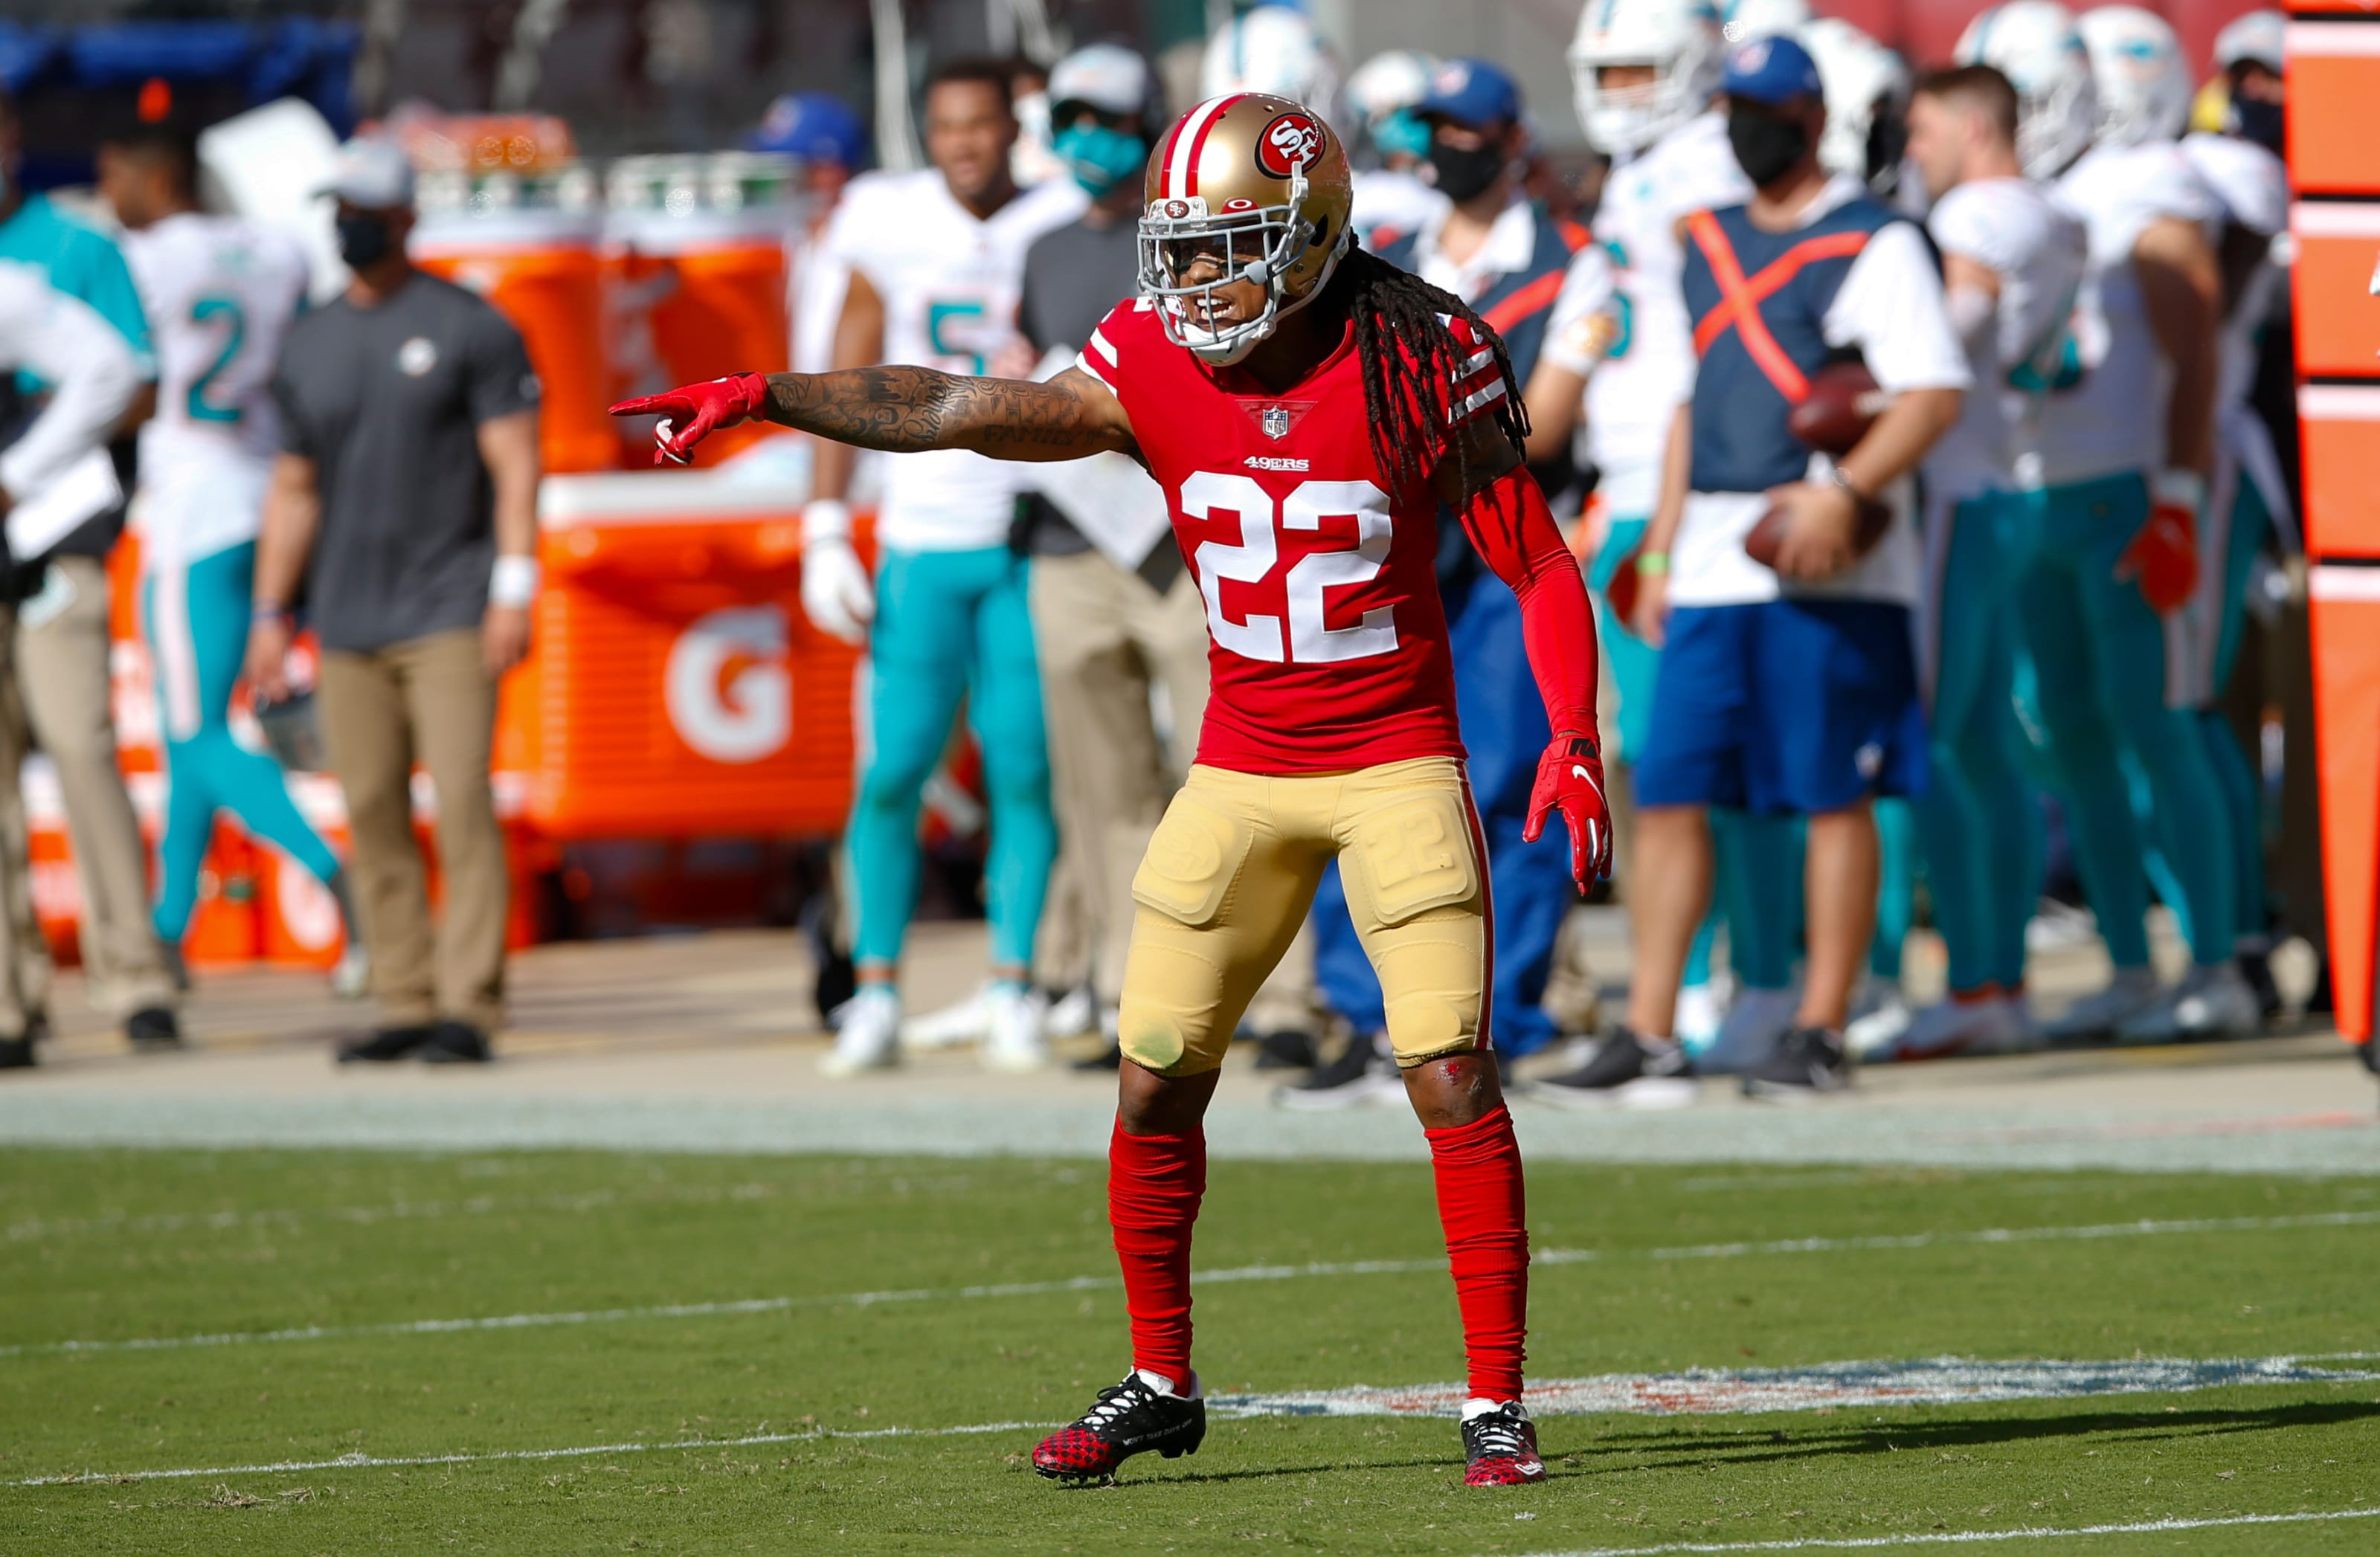 49ers news: 4 players who could switch jersey numbers - Page 3